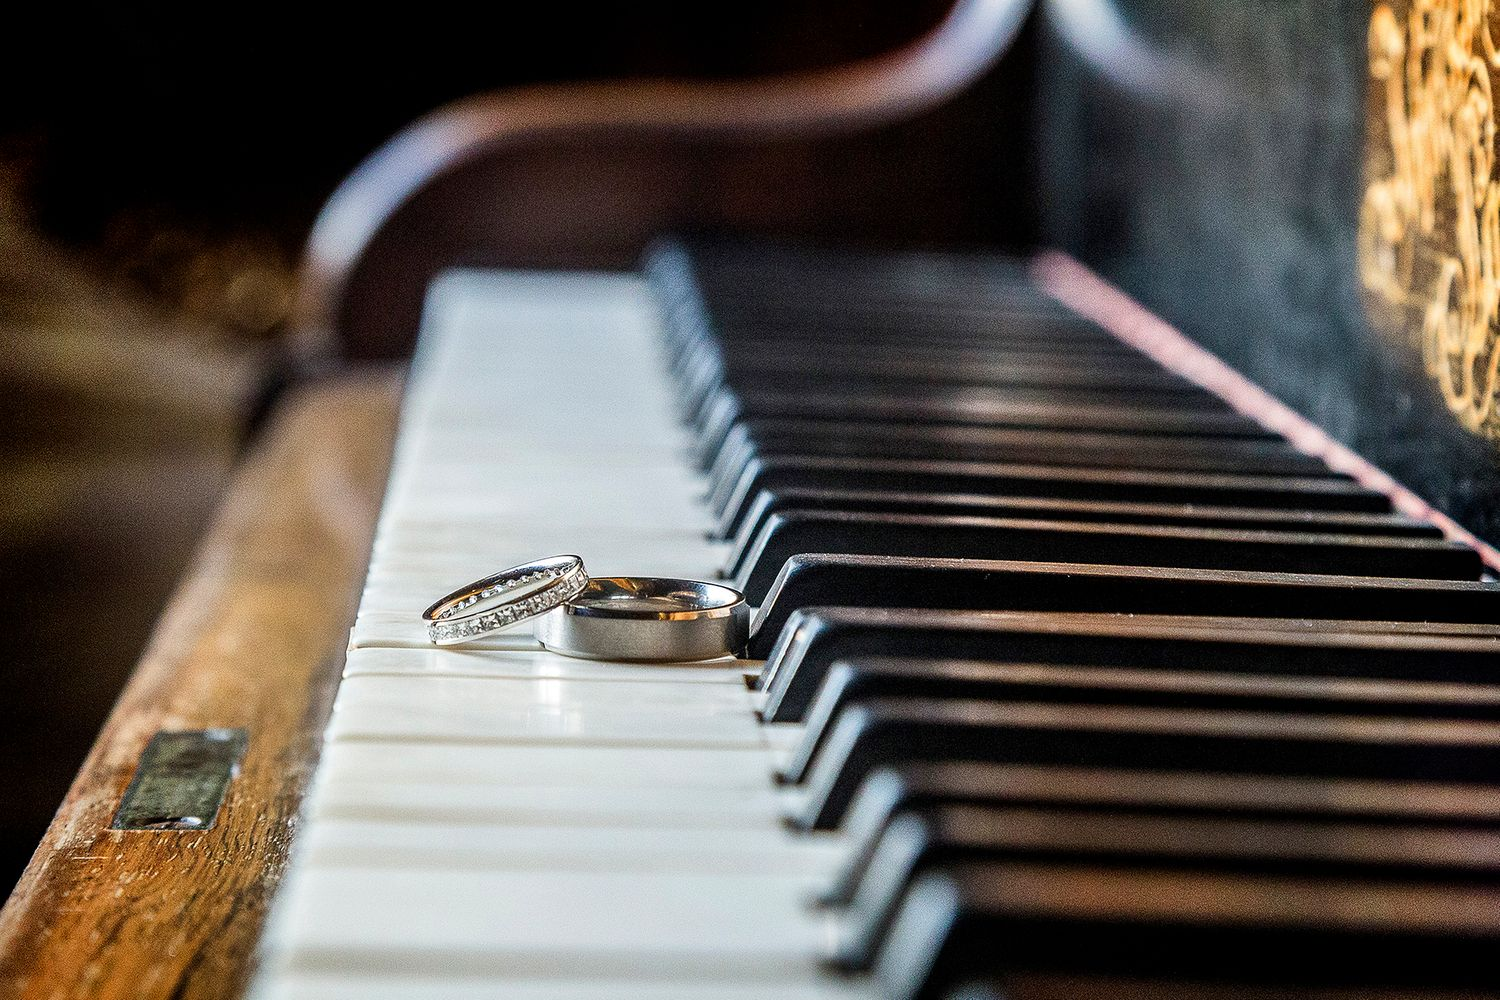 wedding rings positioned on piano keys